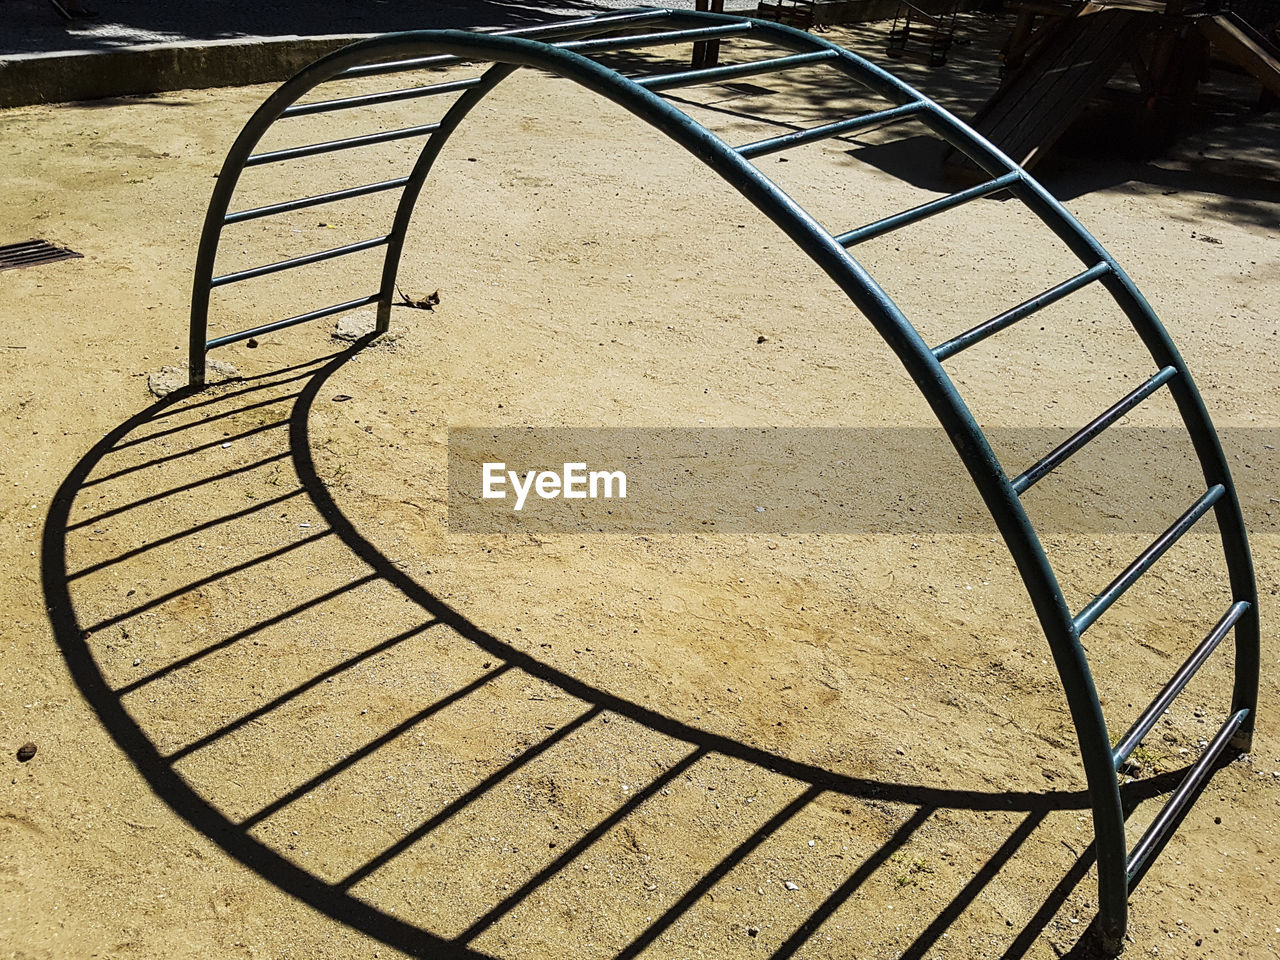 metal, high angle view, day, no people, sunlight, shadow, pattern, absence, railing, nature, empty, playground, outdoors, architecture, staircase, bicycle rack, built structure, spiral, footpath, in a row, focus on shadow